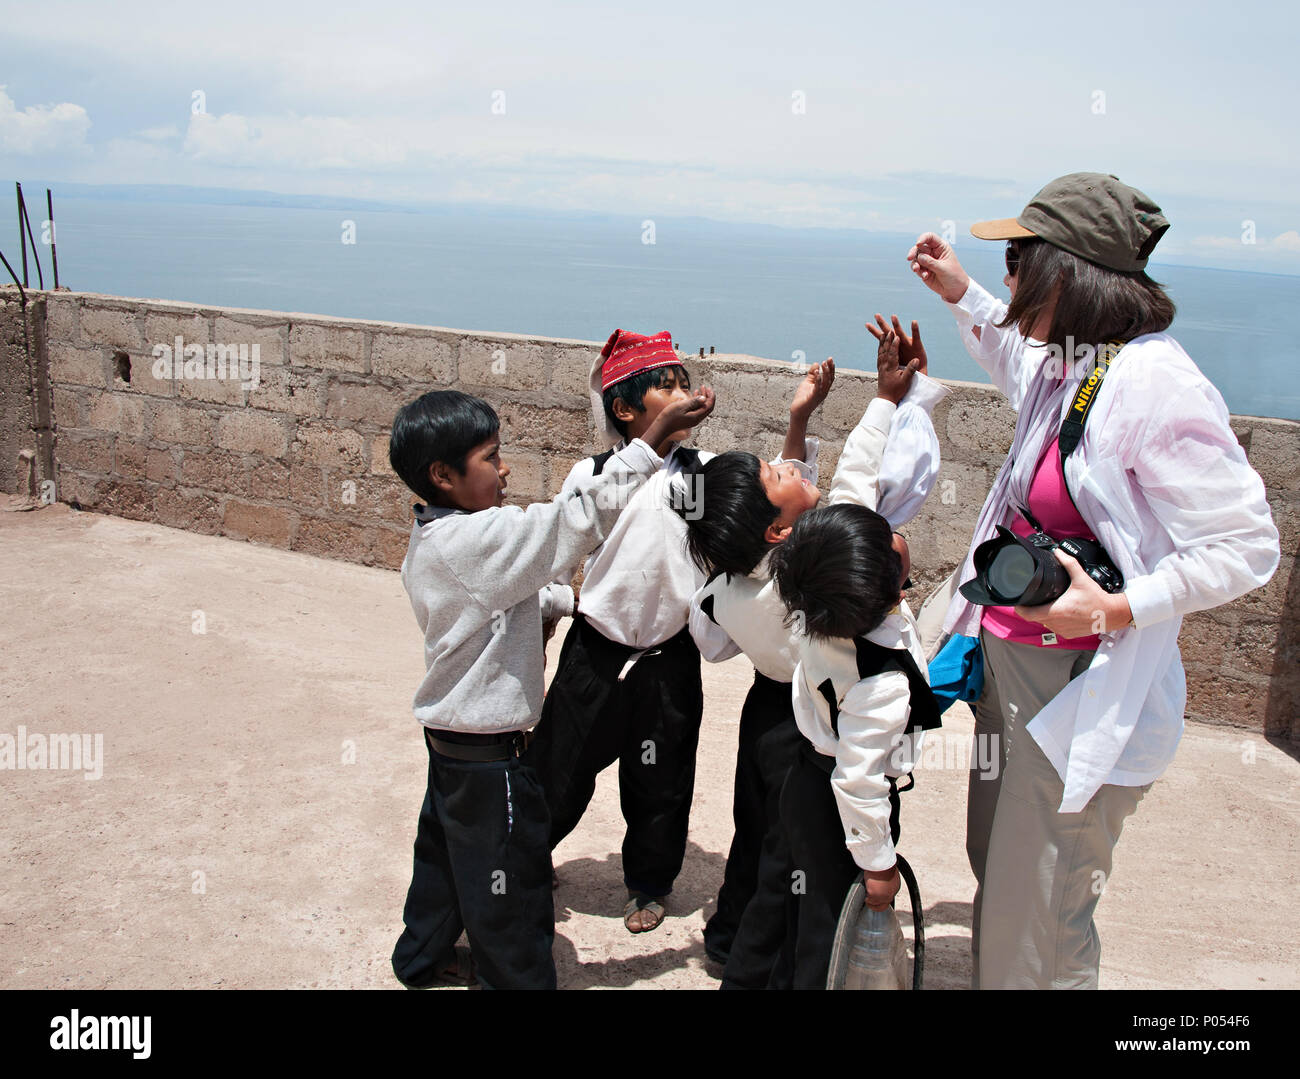 Young boys gather round a tourist offerring candy and sweets in the village at Taquile island, Lake Titicaca. Peru - Stock Image